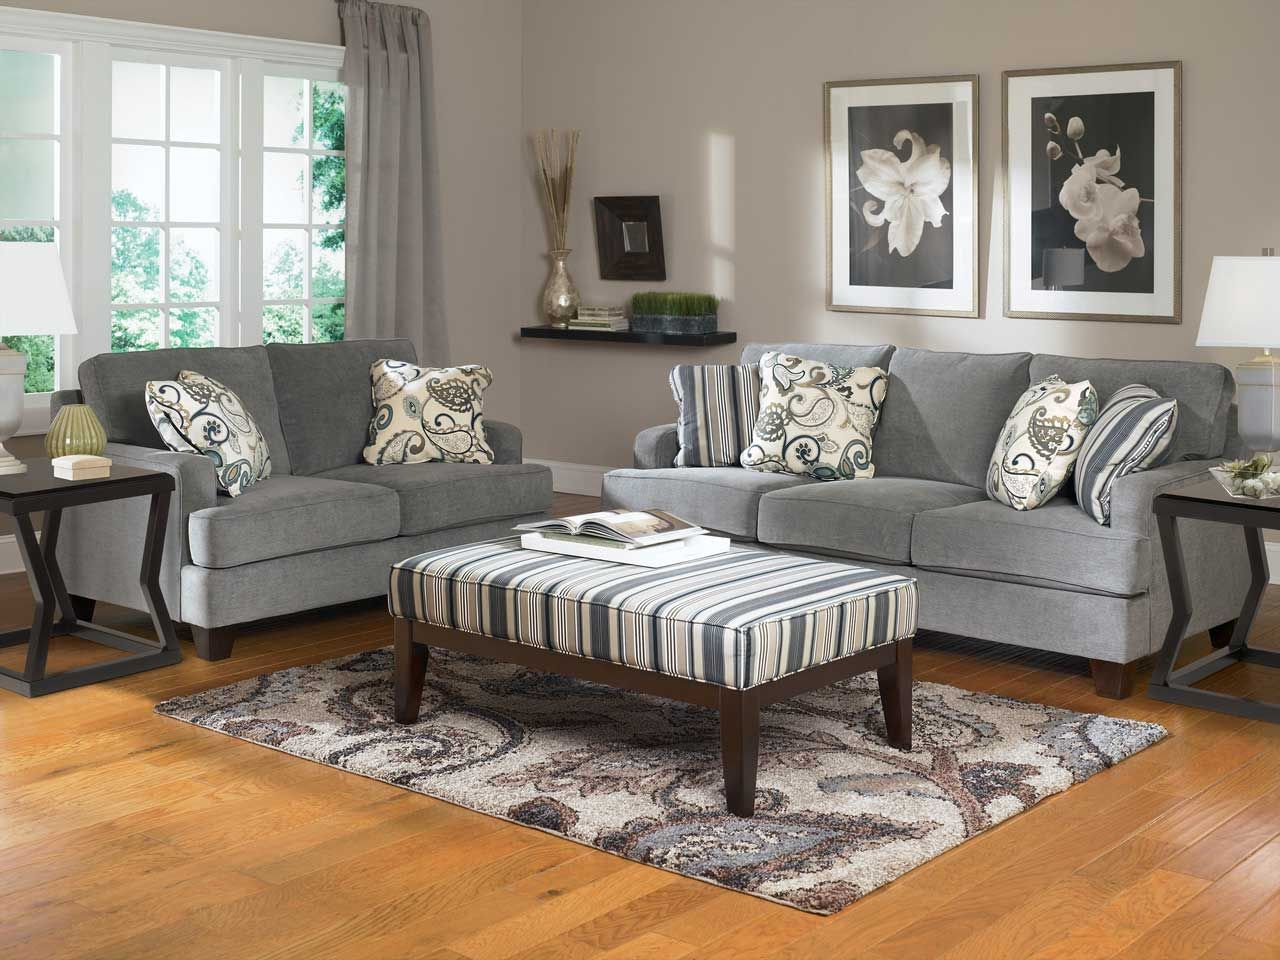 Living Room Design With Grey Sofa Fascinating Take A Look In The Following Living Rooms With Gray Elements Review